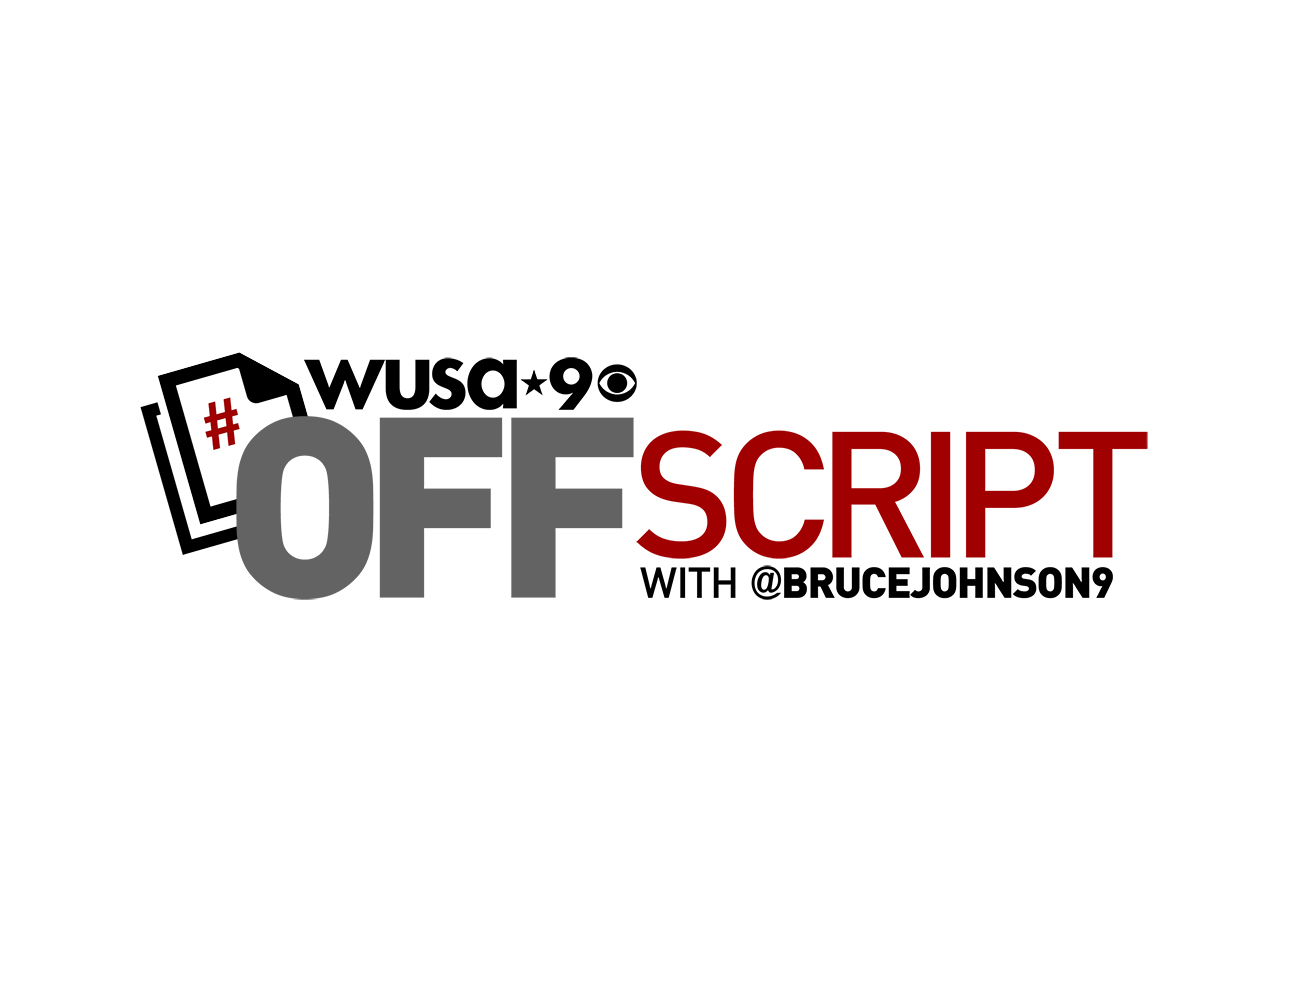 9.2 channel numbers for Off Script With Bruce Johnson on 3